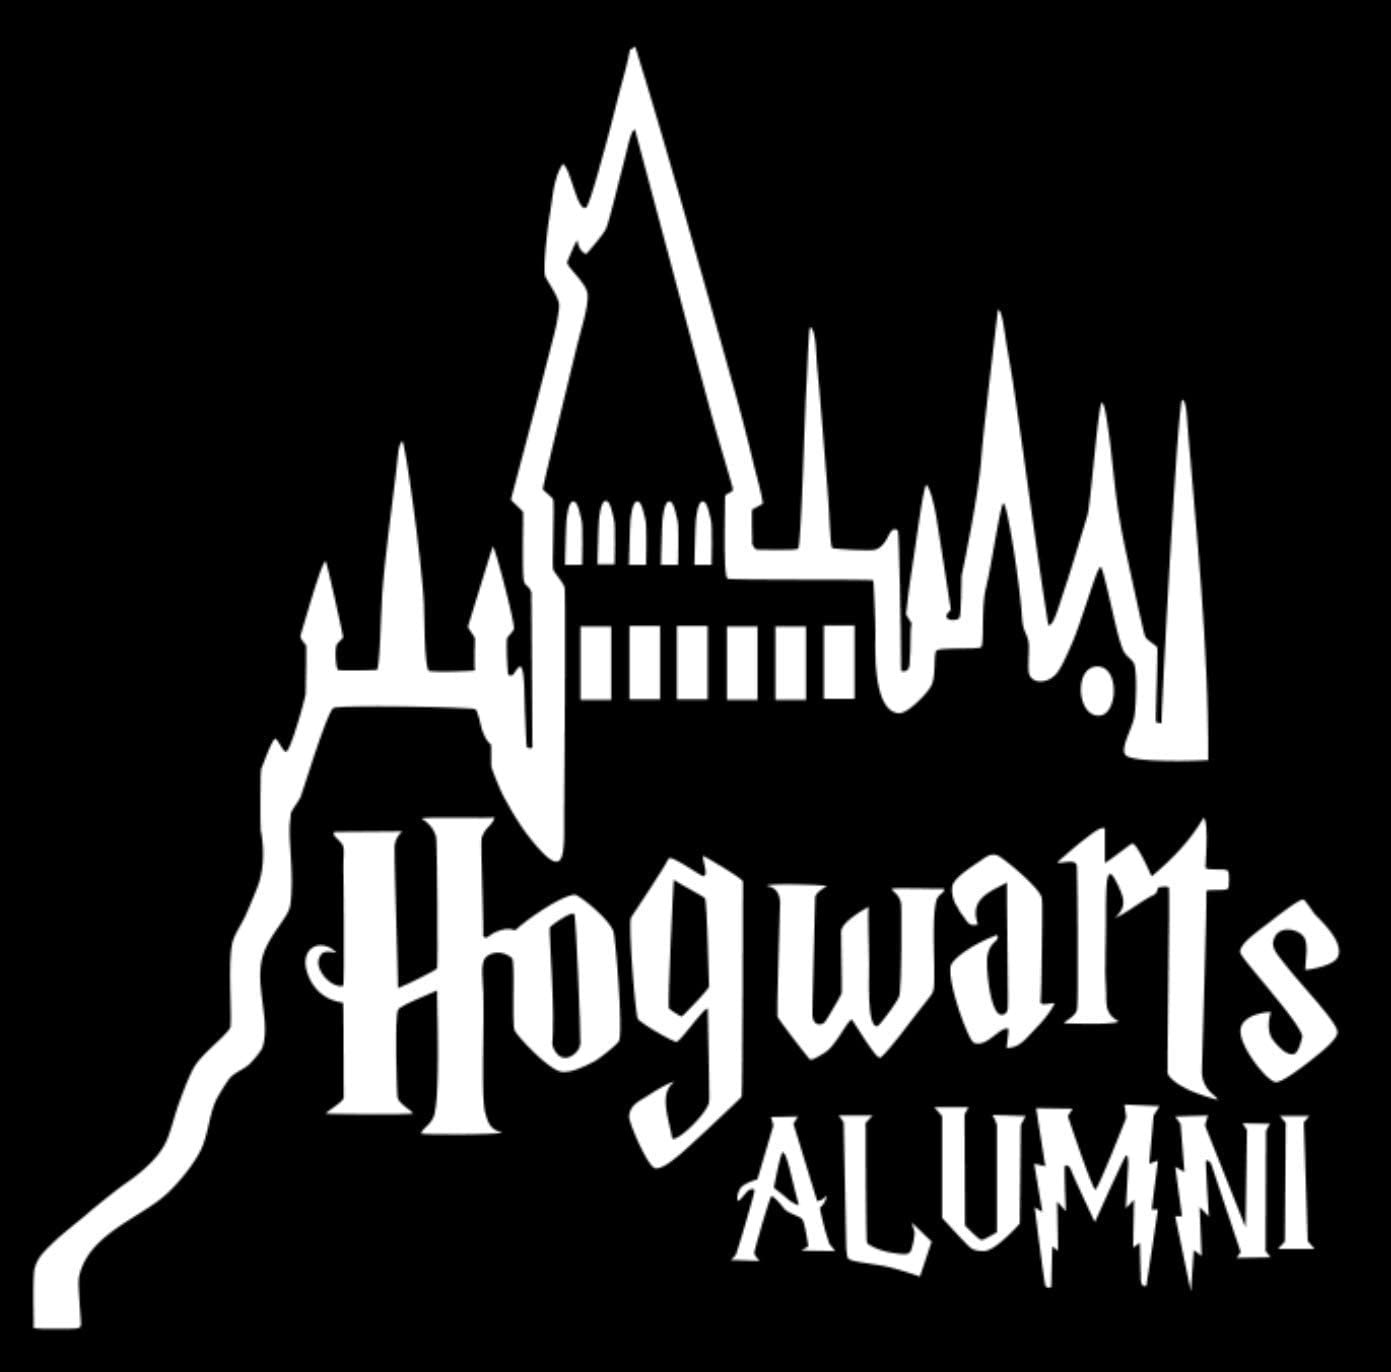 Signage Cafe Hogwarts Alumni Castle Car Truck Vinyl Decal Art Wall Sticker Harry Potter Movies Books Black, 6